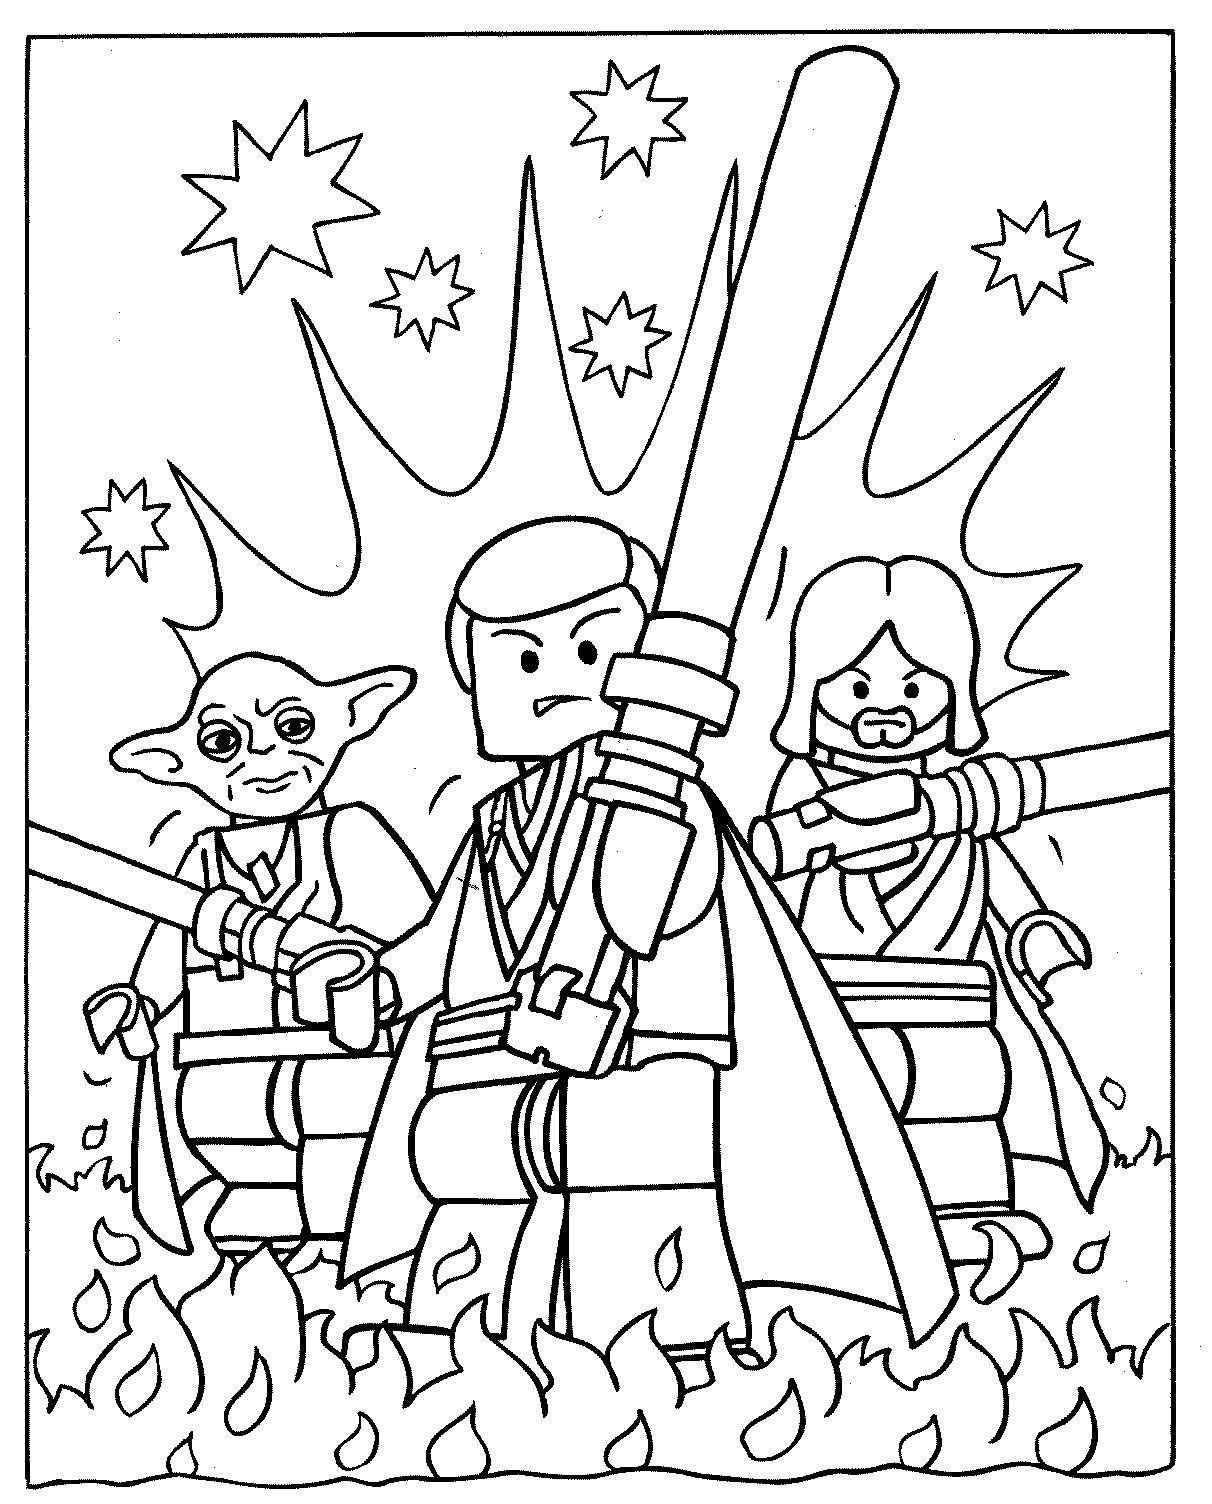 lego coloring pages. @jenny goforth i saw your party